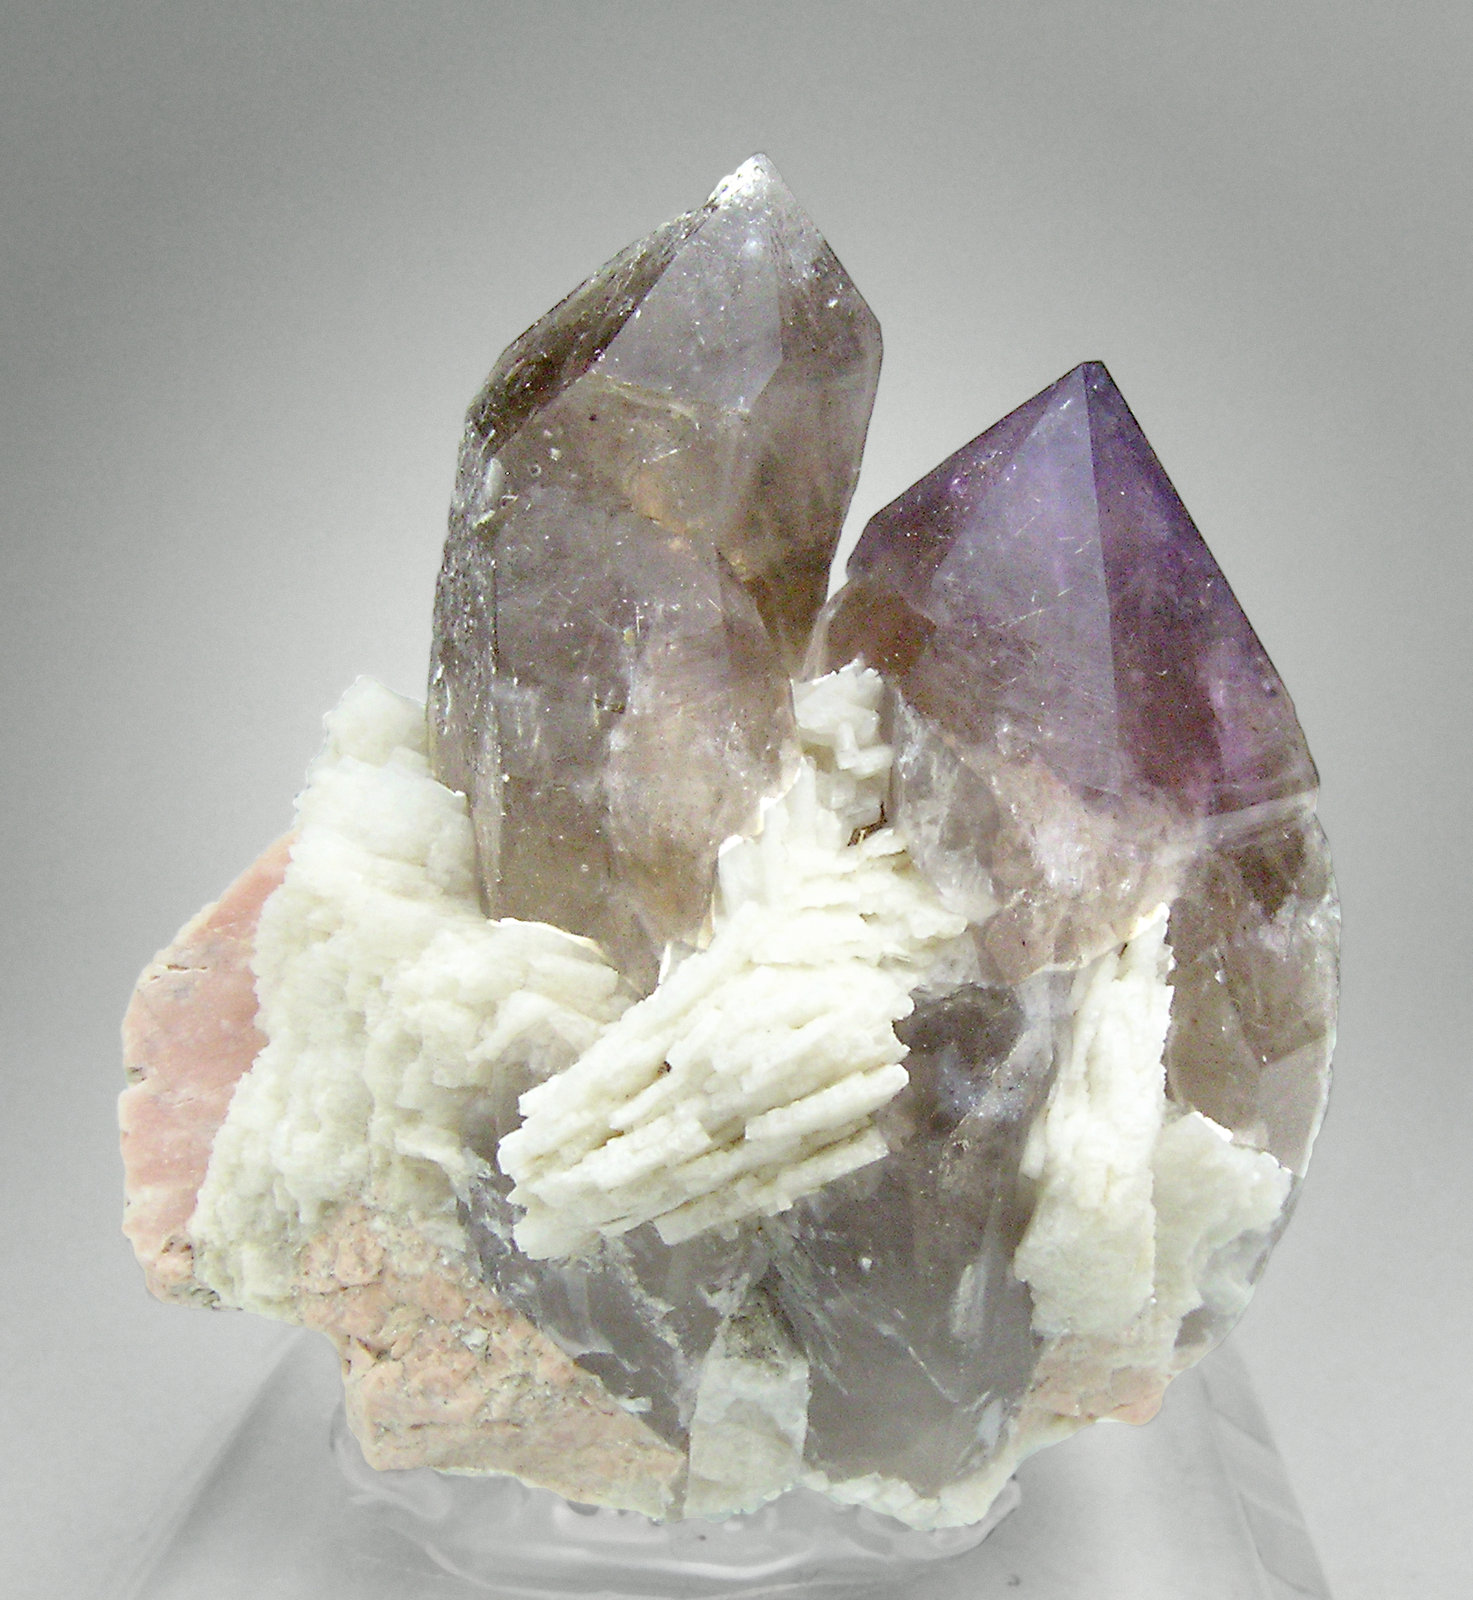 specimens/s_imagesM9/Amethyst-Quartz-ND9M9r.jpg